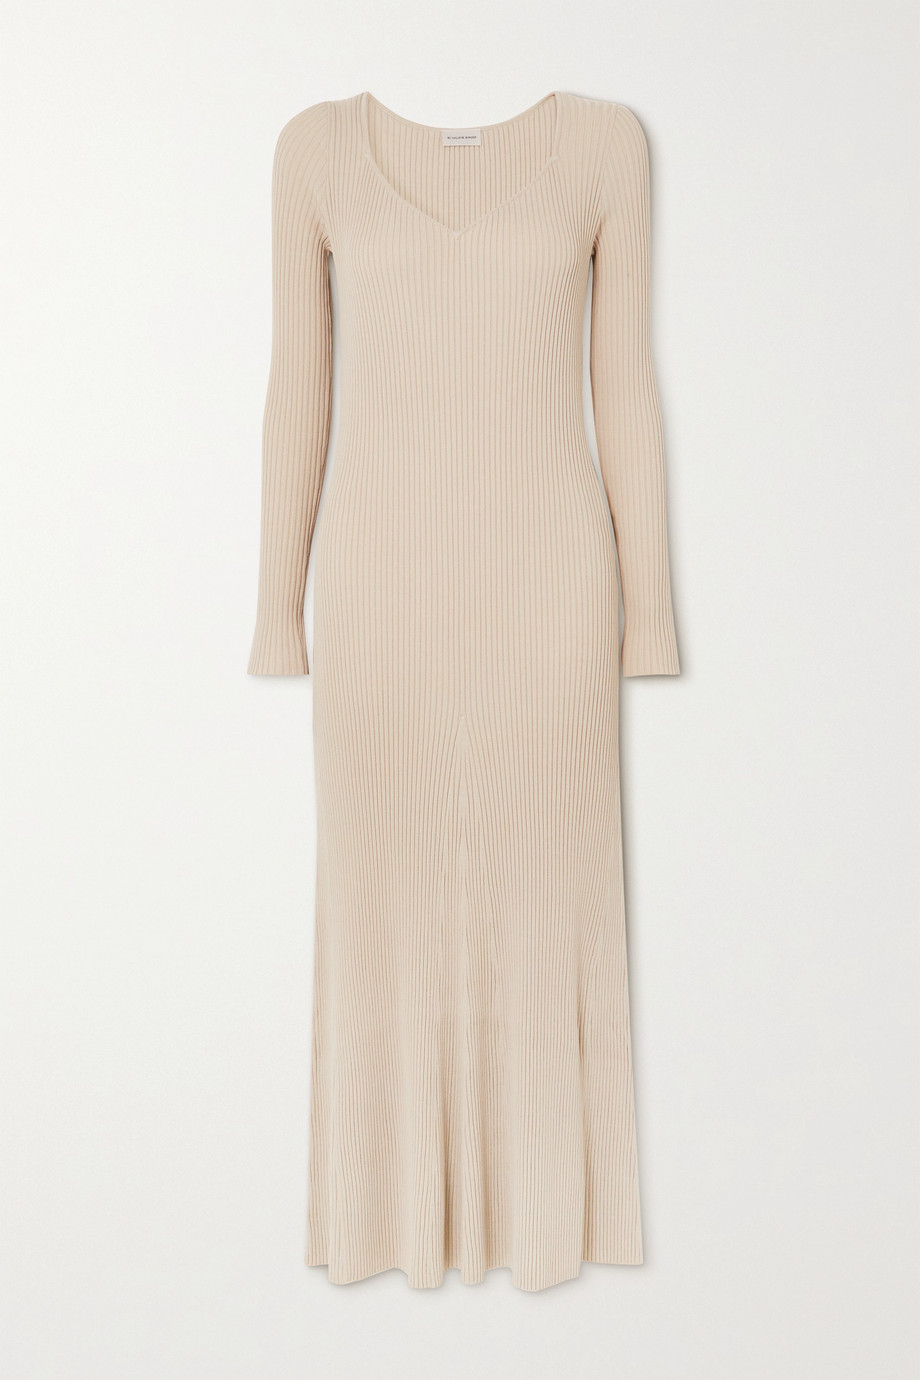 BY MALENE BIRGER Frerea ribbed-knit maxi dress